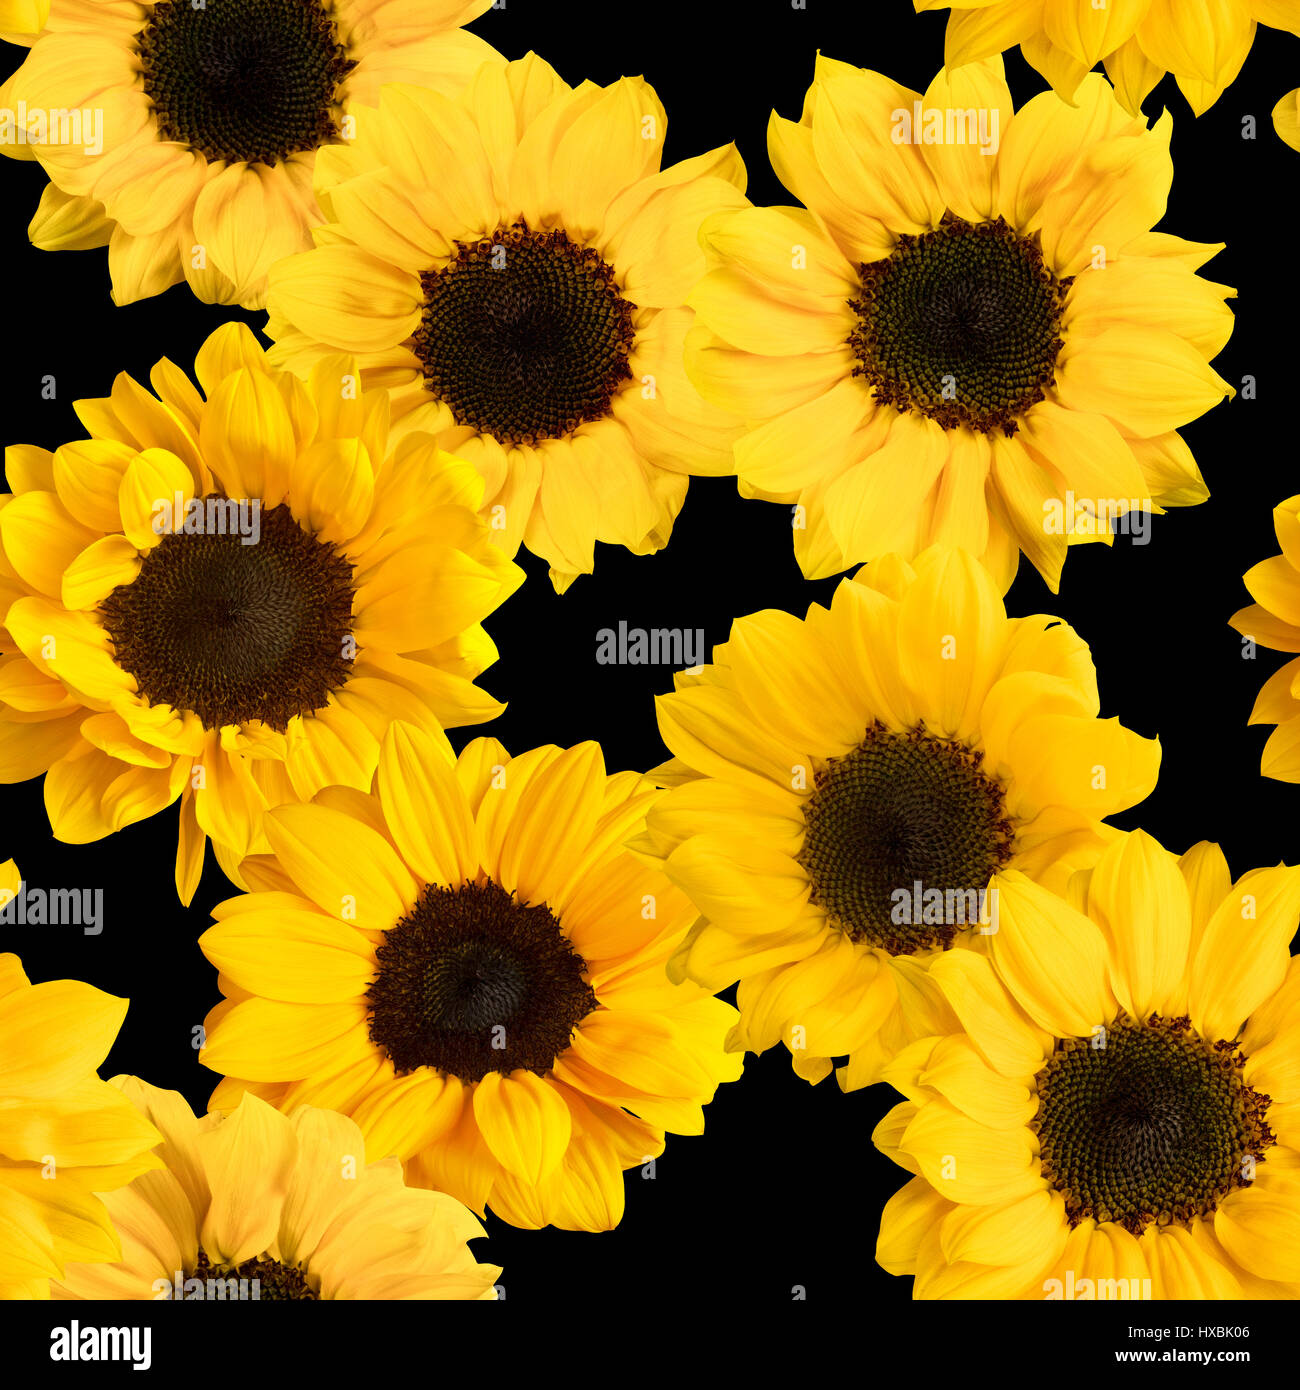 a seamless pattern with photos of shiny yellow sunflowers on a black HXBK06